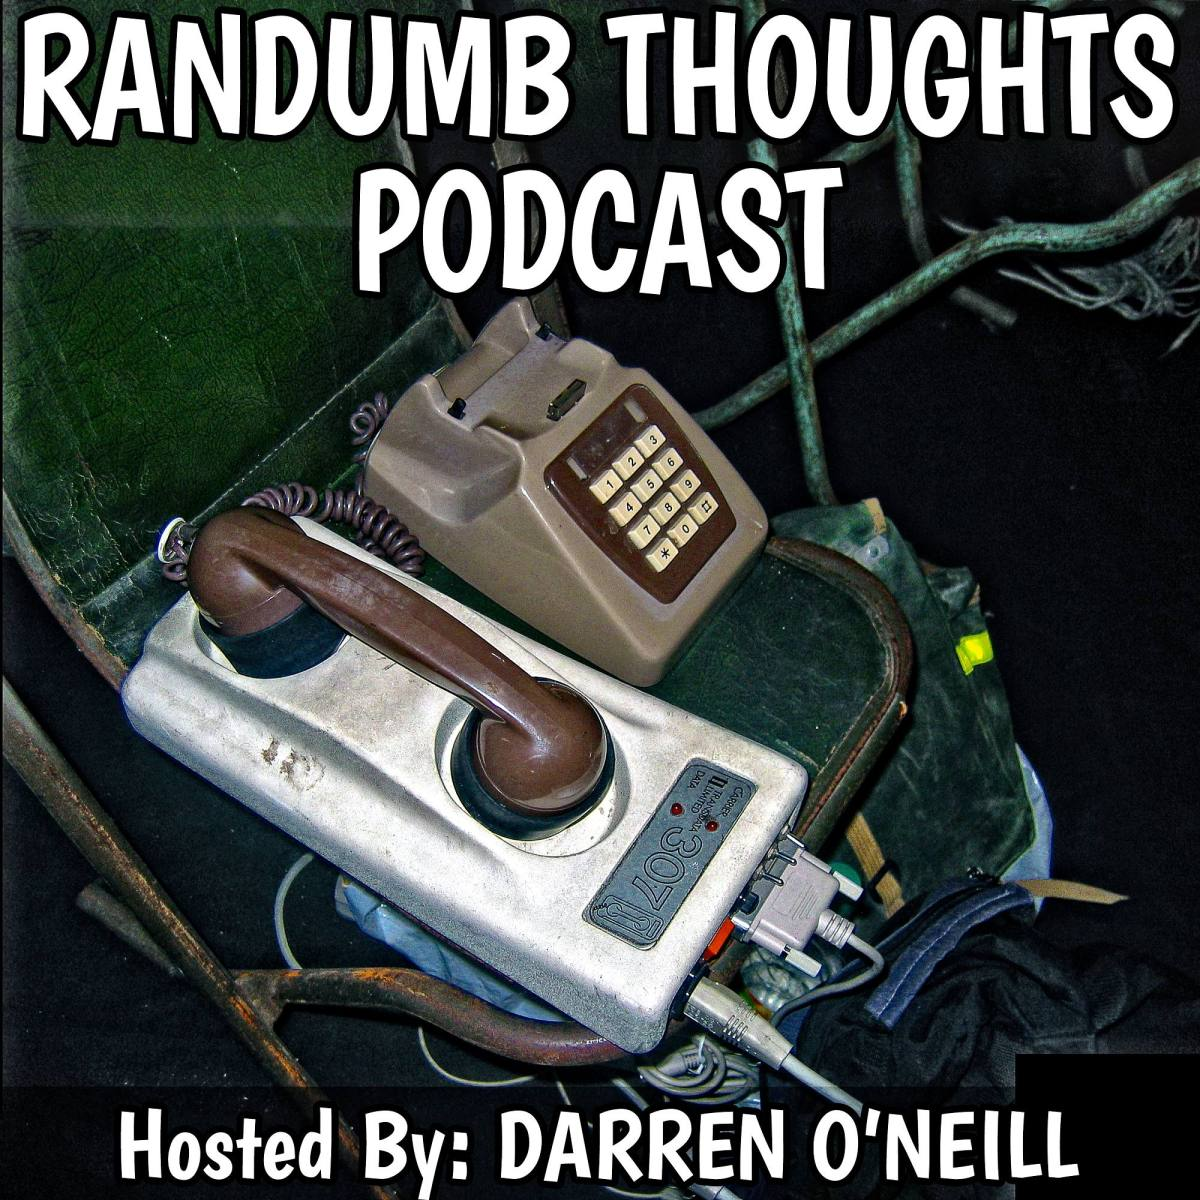 Randumb Thoughts Episode 11